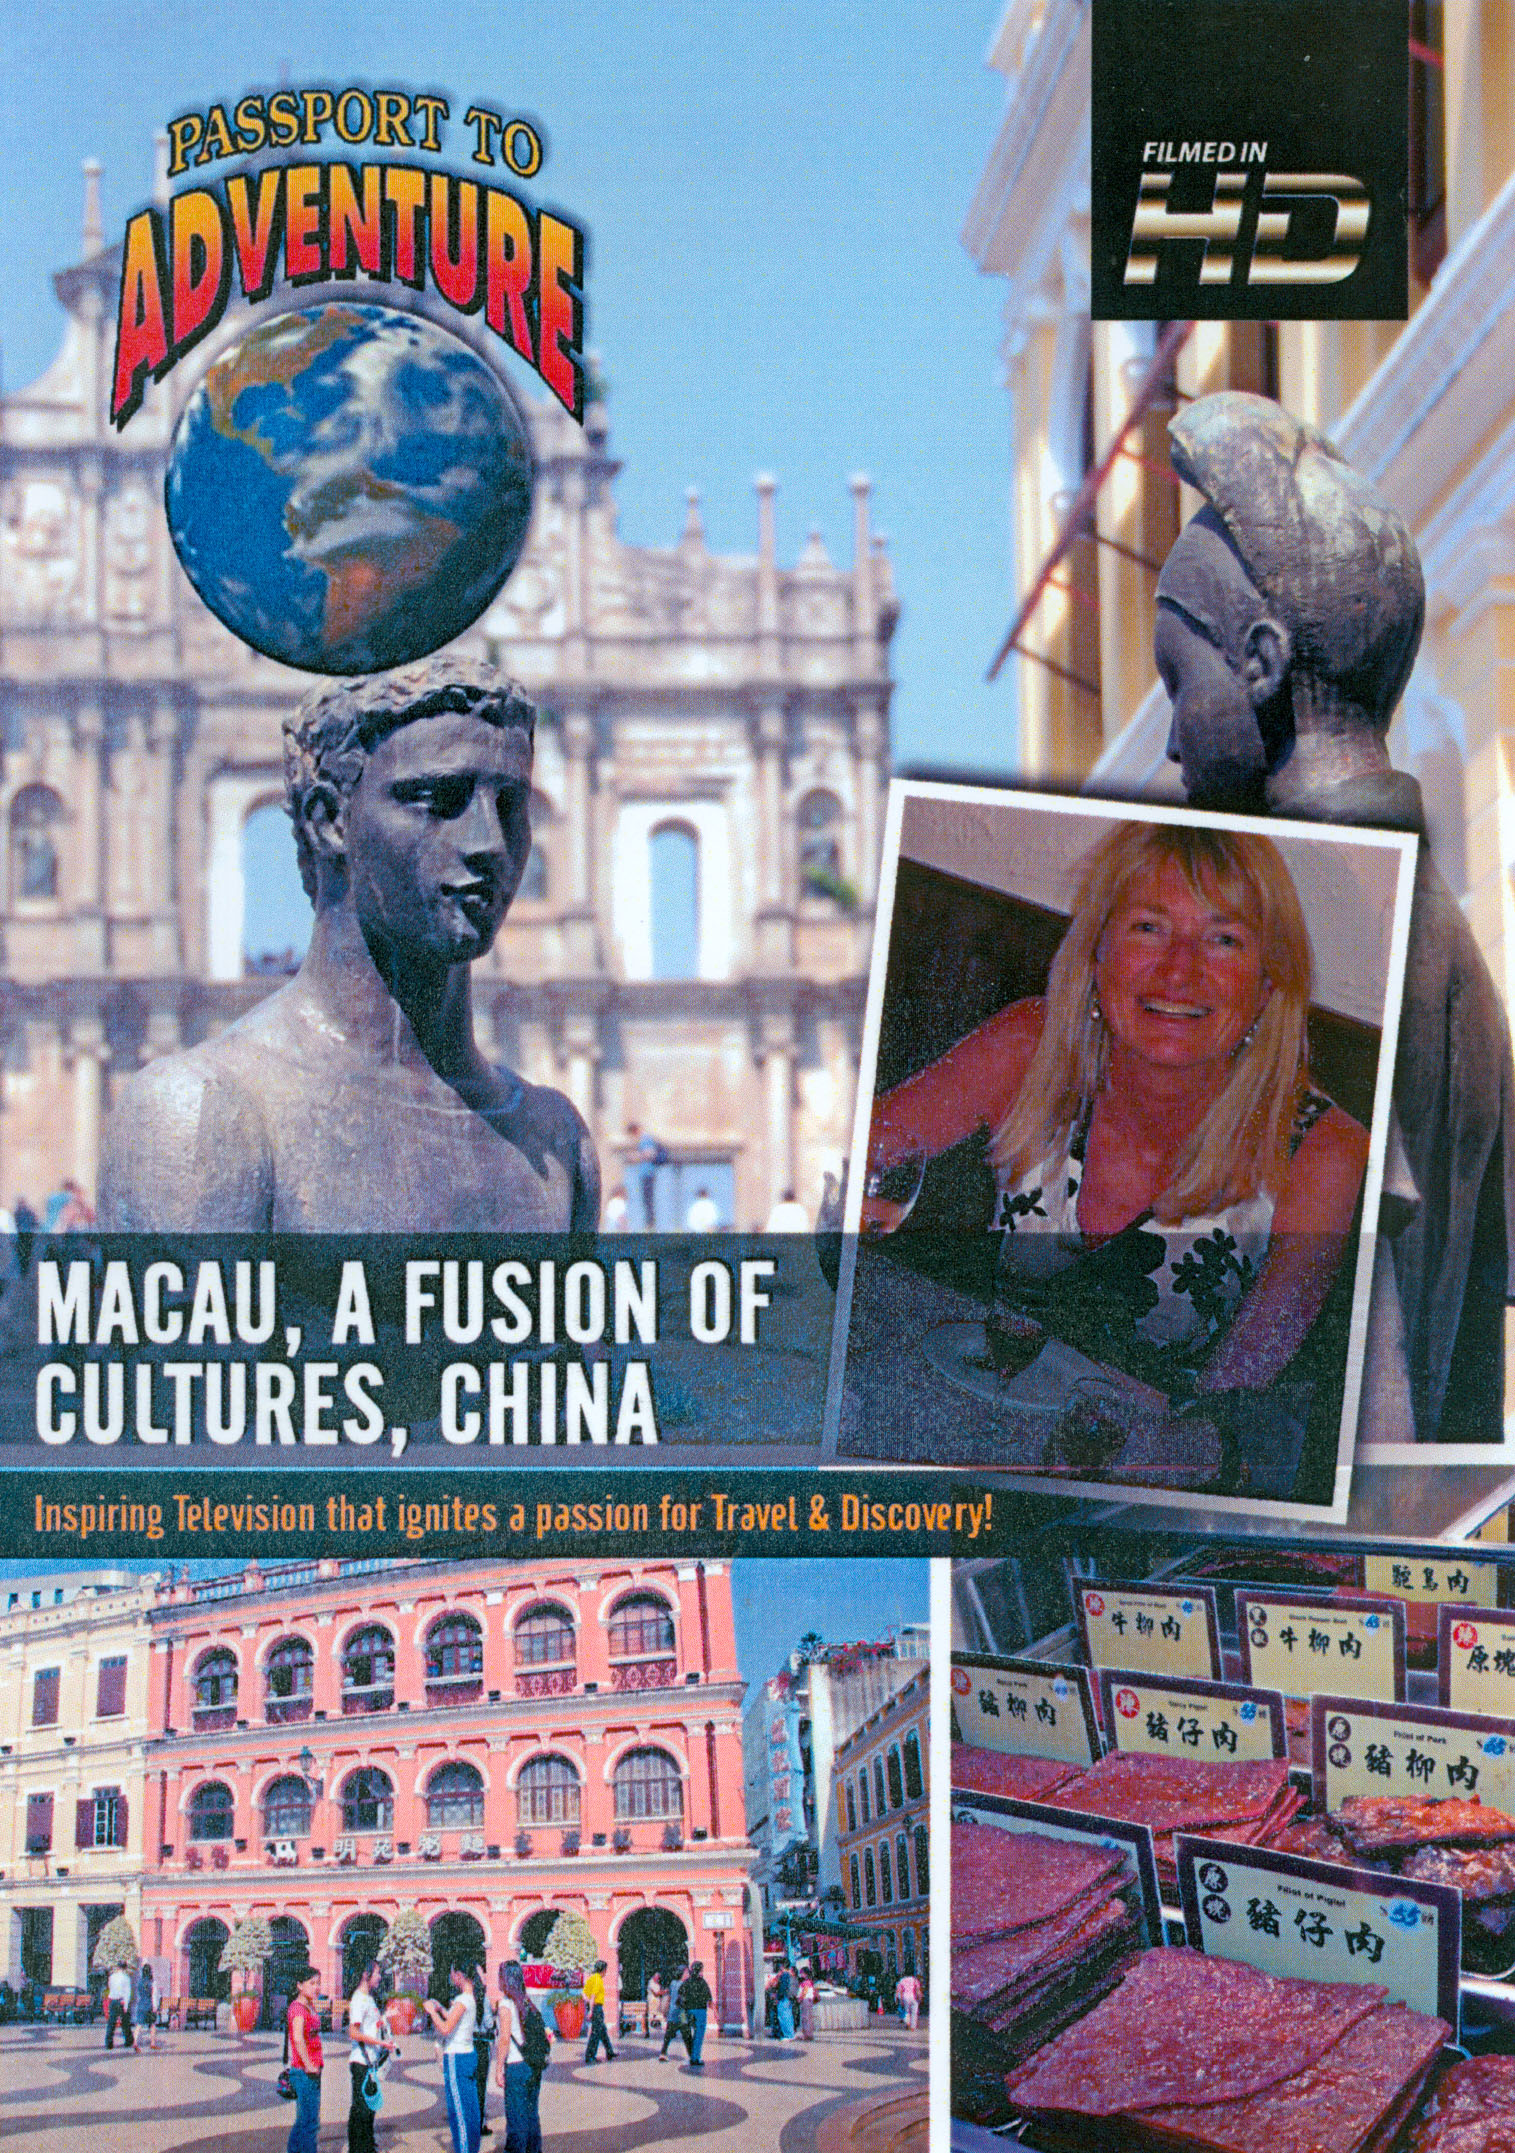 Passport to Adventure: Macau, A Fusion of Cultures, China